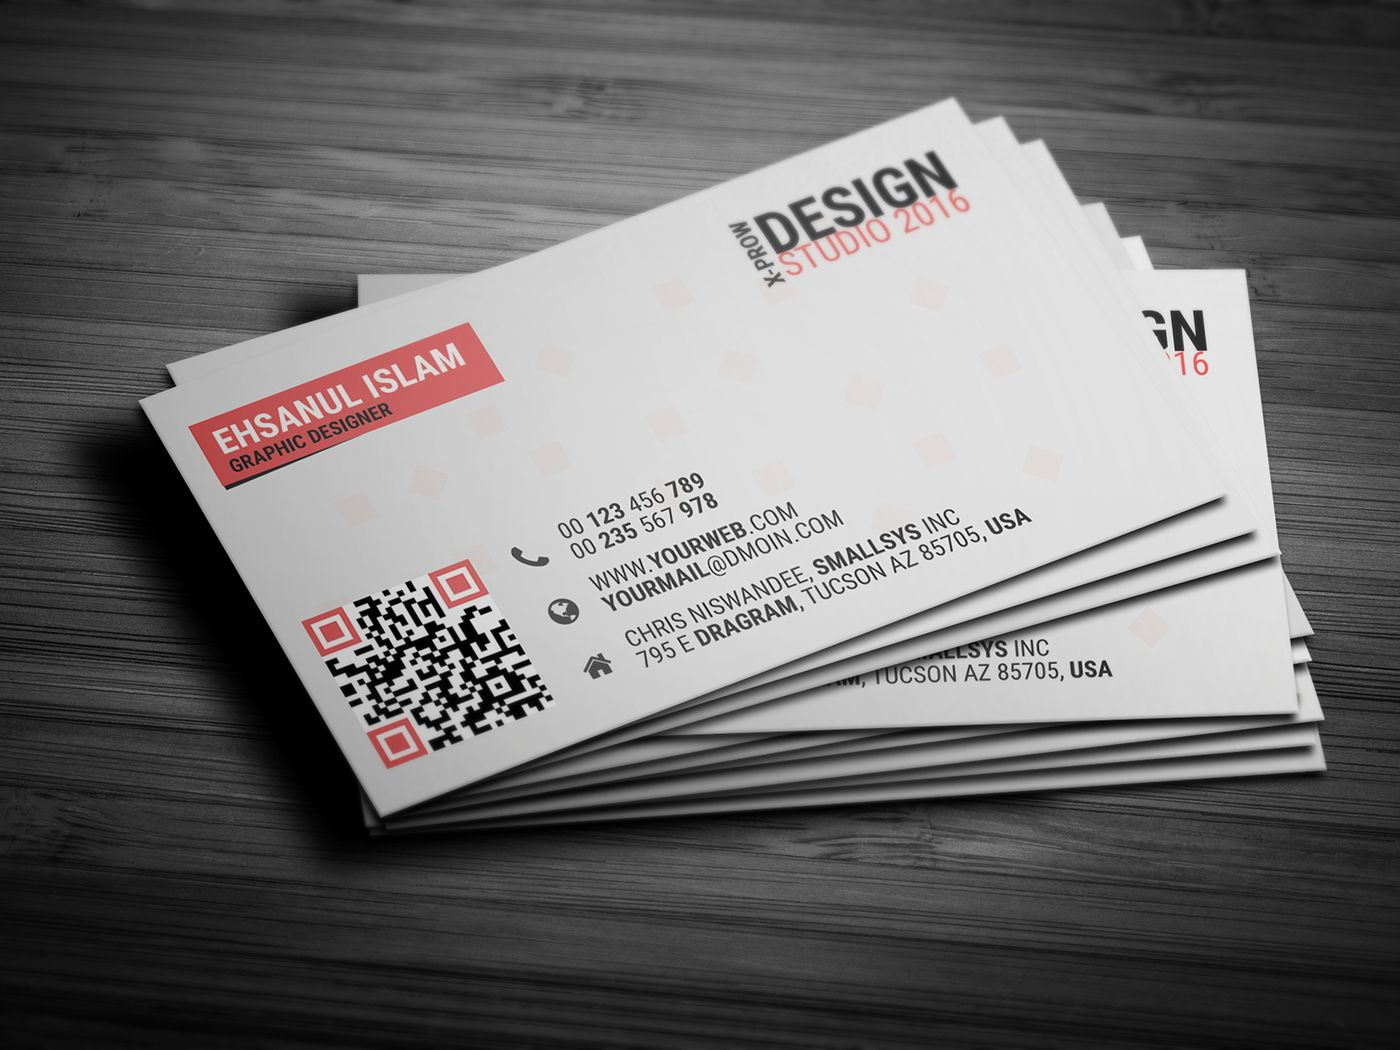 Creative business card template 35x2 inc 025 bleeds cmyk color creative business card template 35x2 inc 025 bleeds cmyk color mood print colourmoves